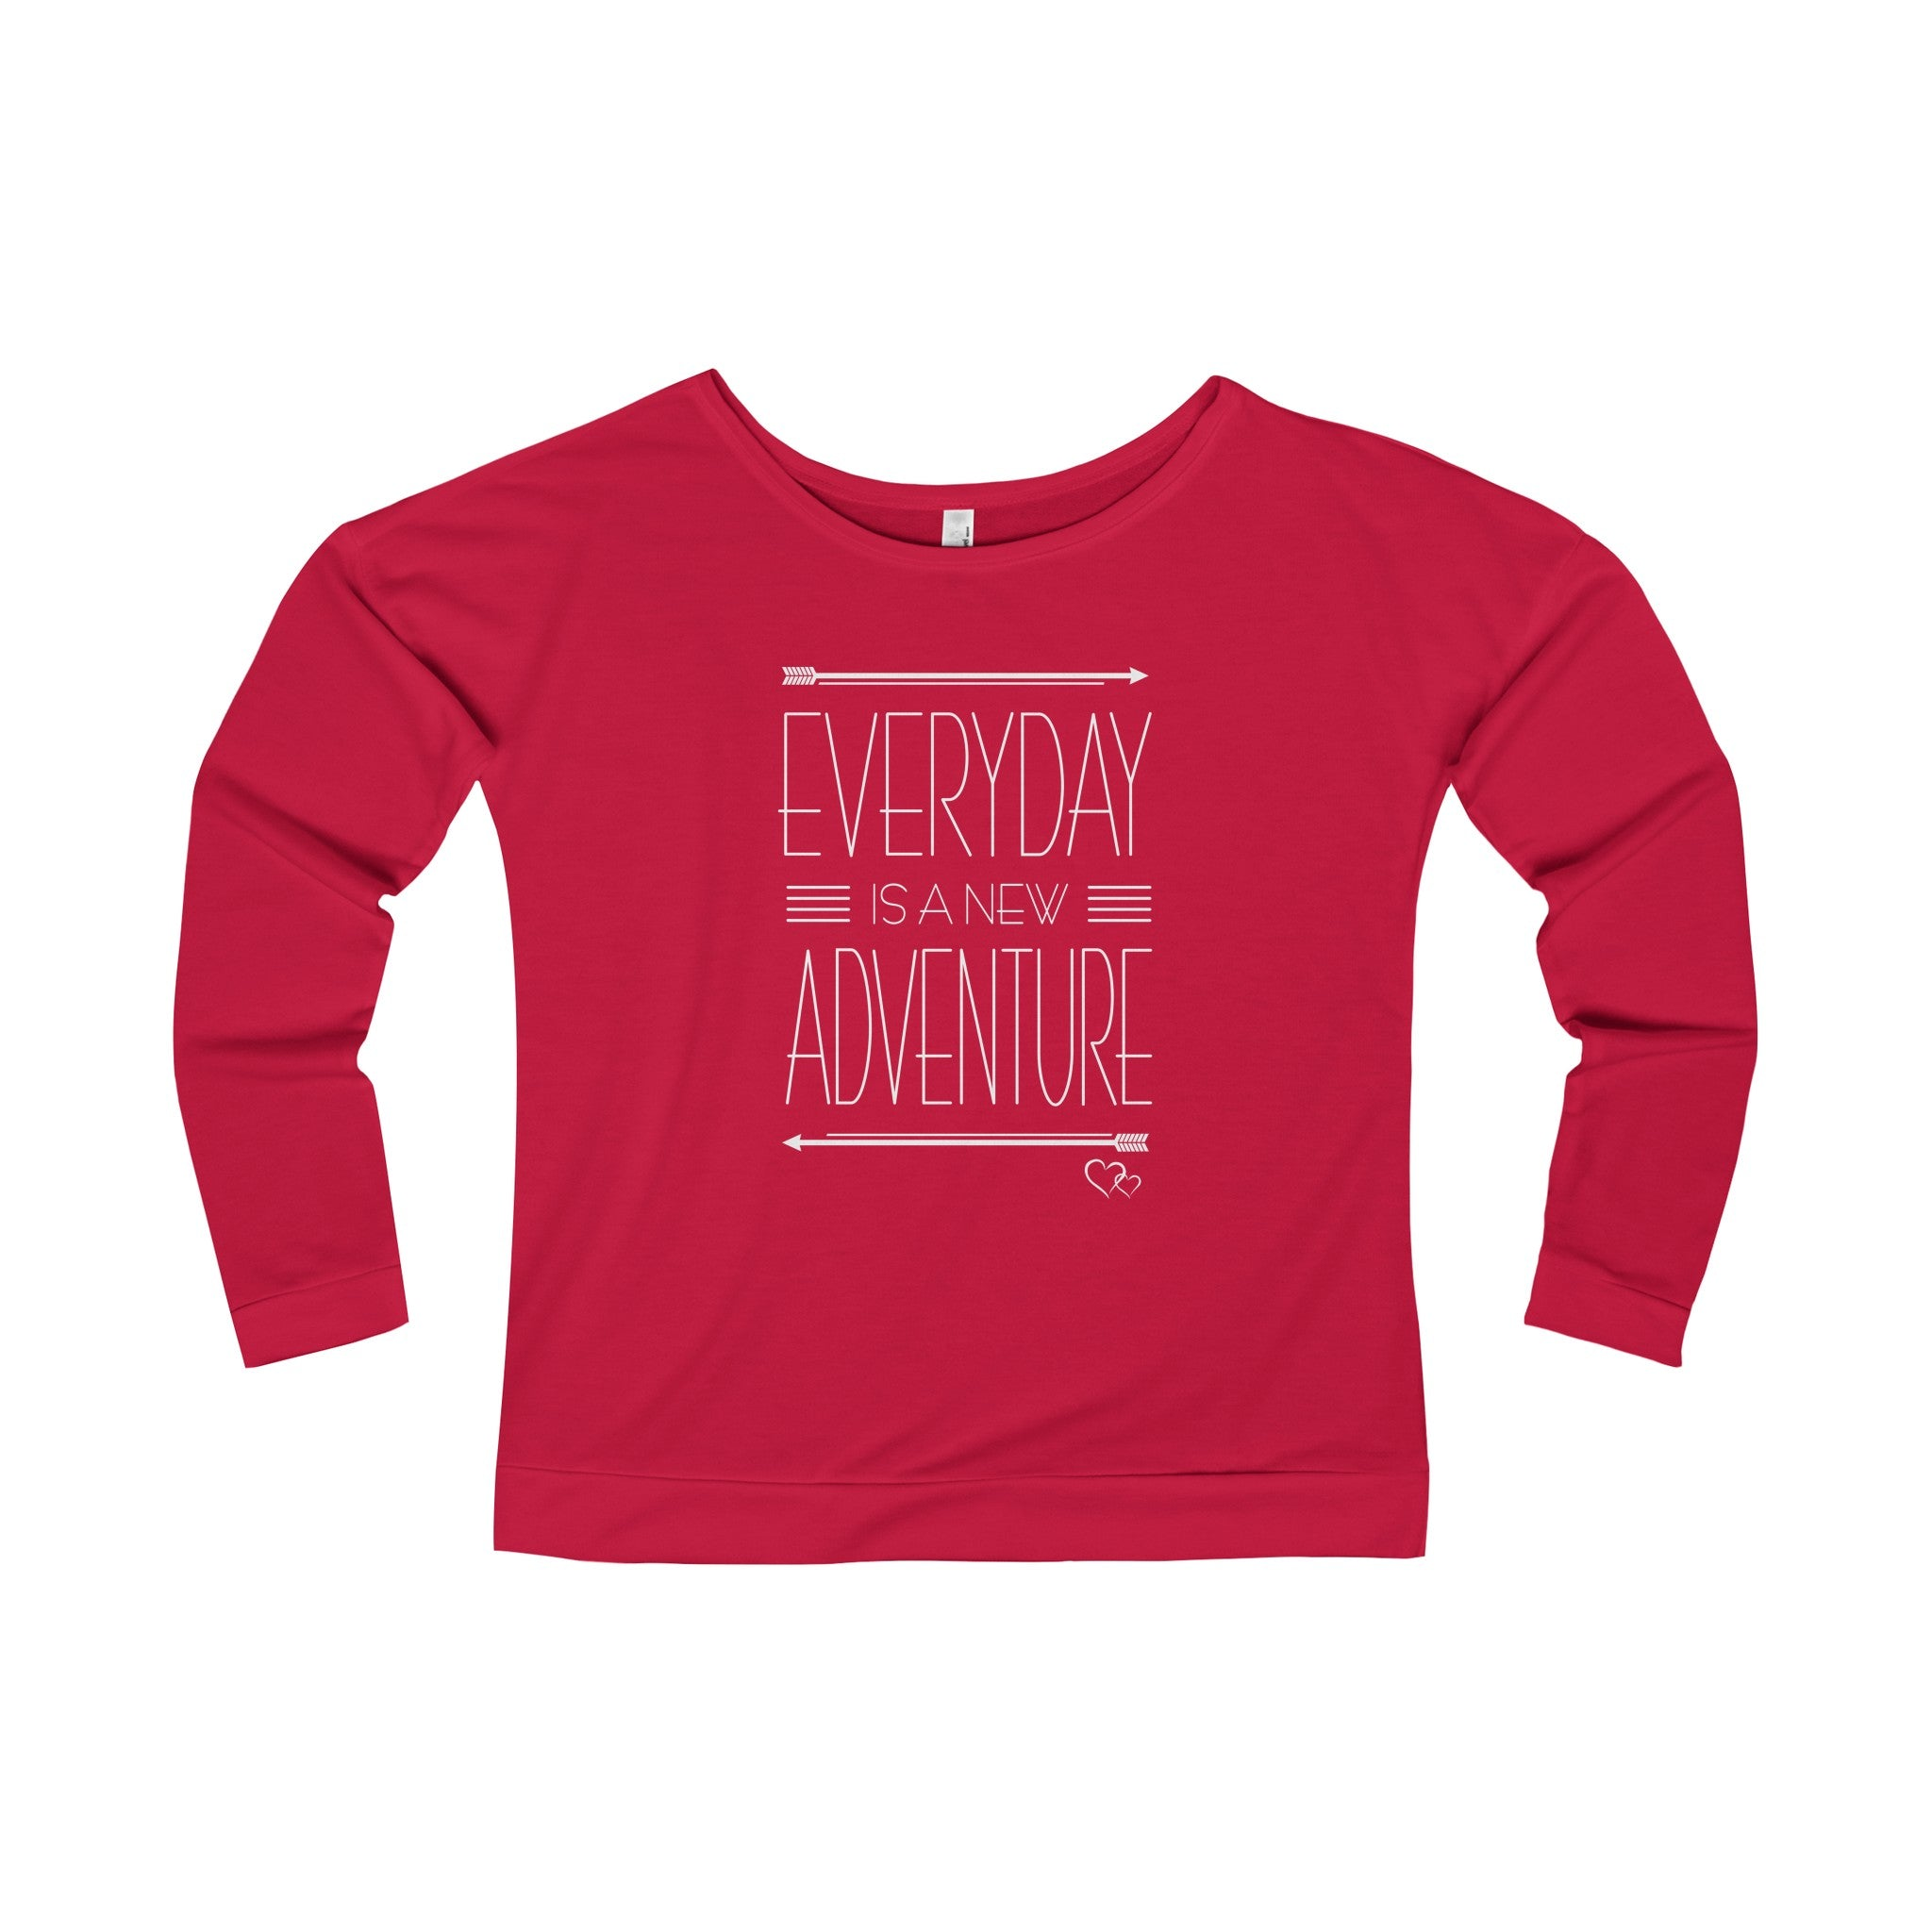 EVERYDAY ADVENTURE - Long Sleeve Scoop Terry T